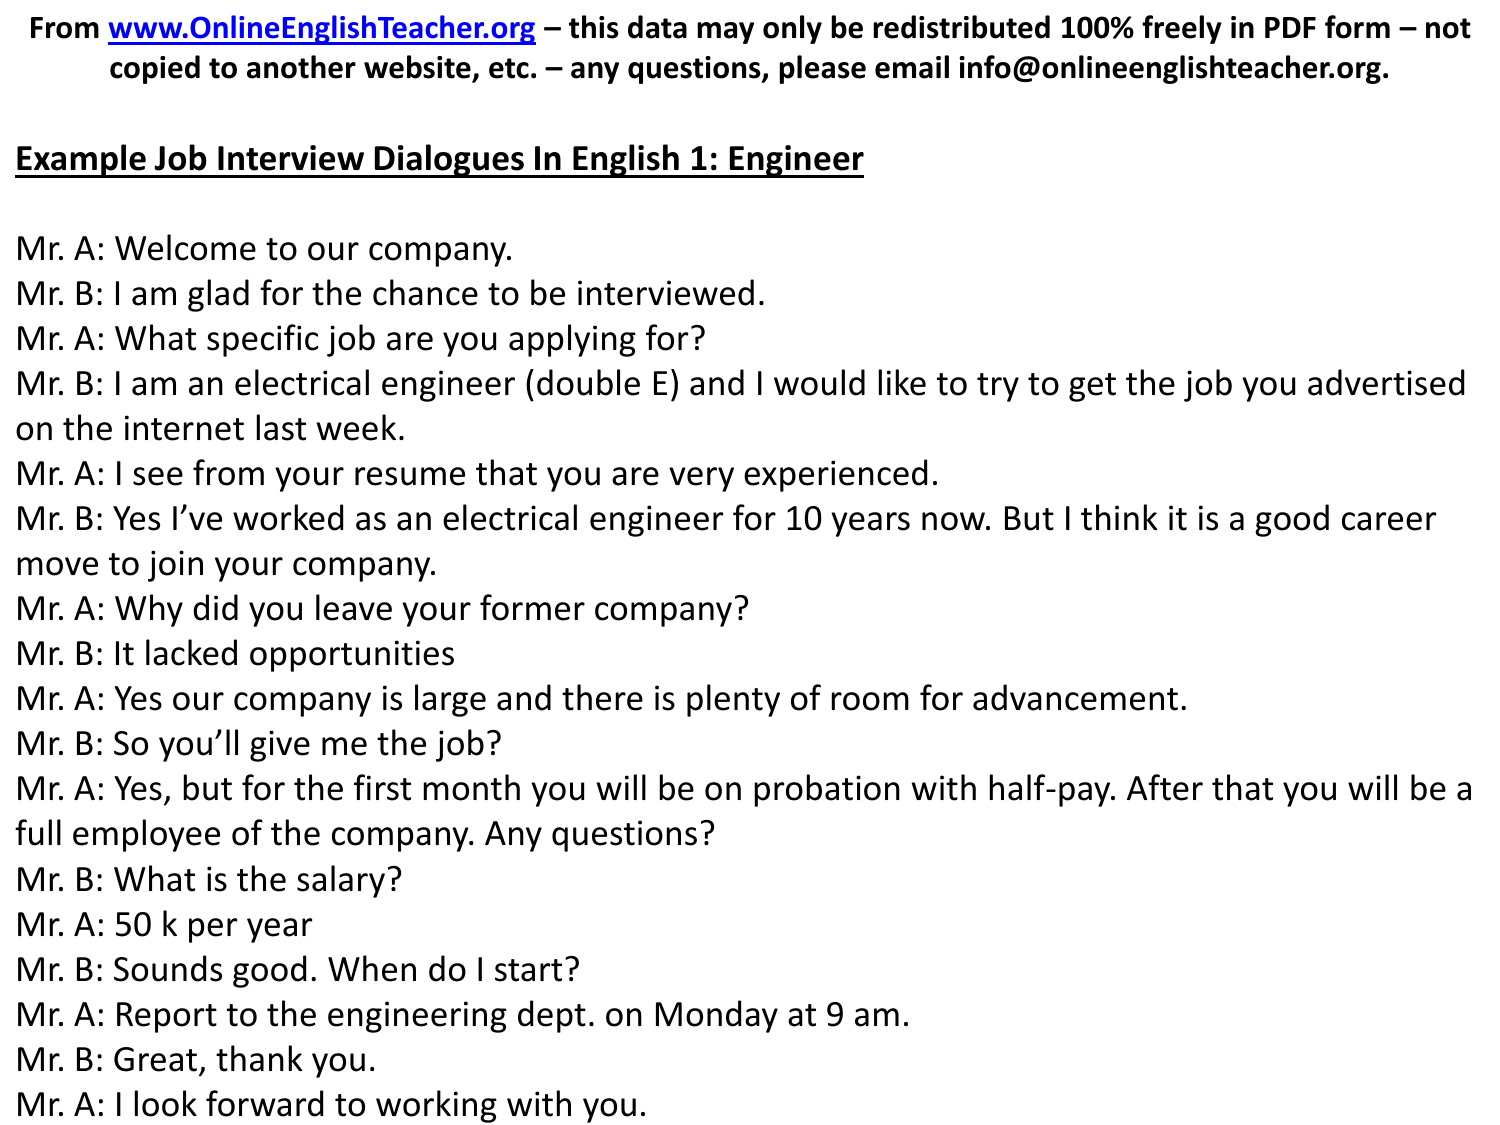 Free-Job-Interview-Dialogues